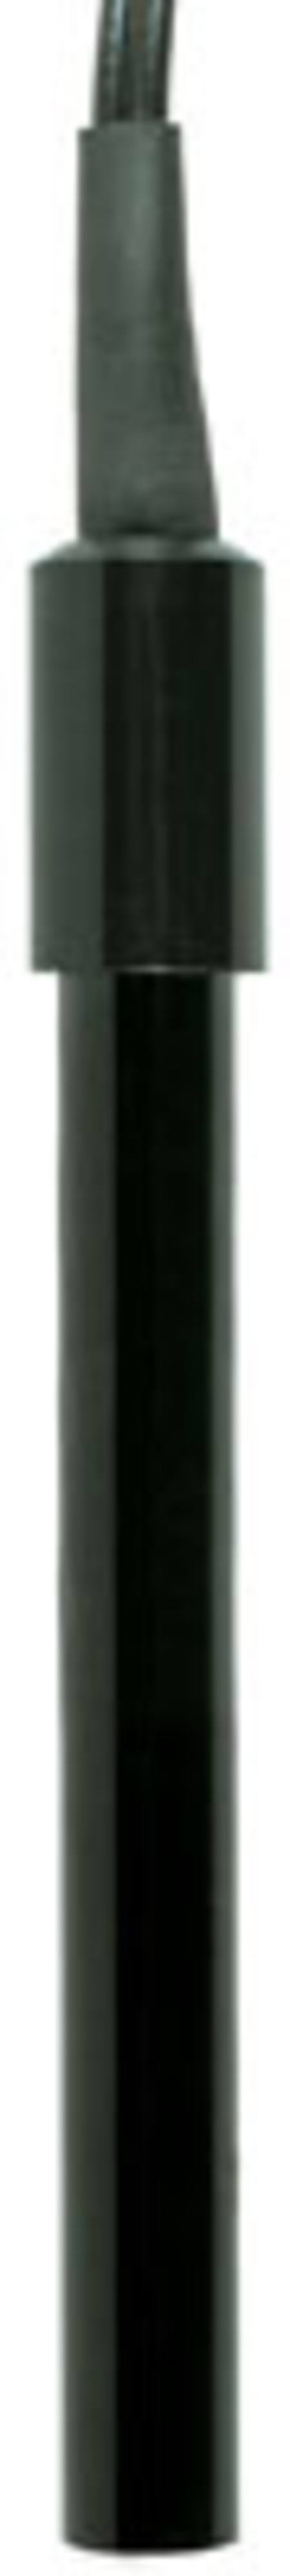 Conductivity Electrode, 2-Ring Graphite